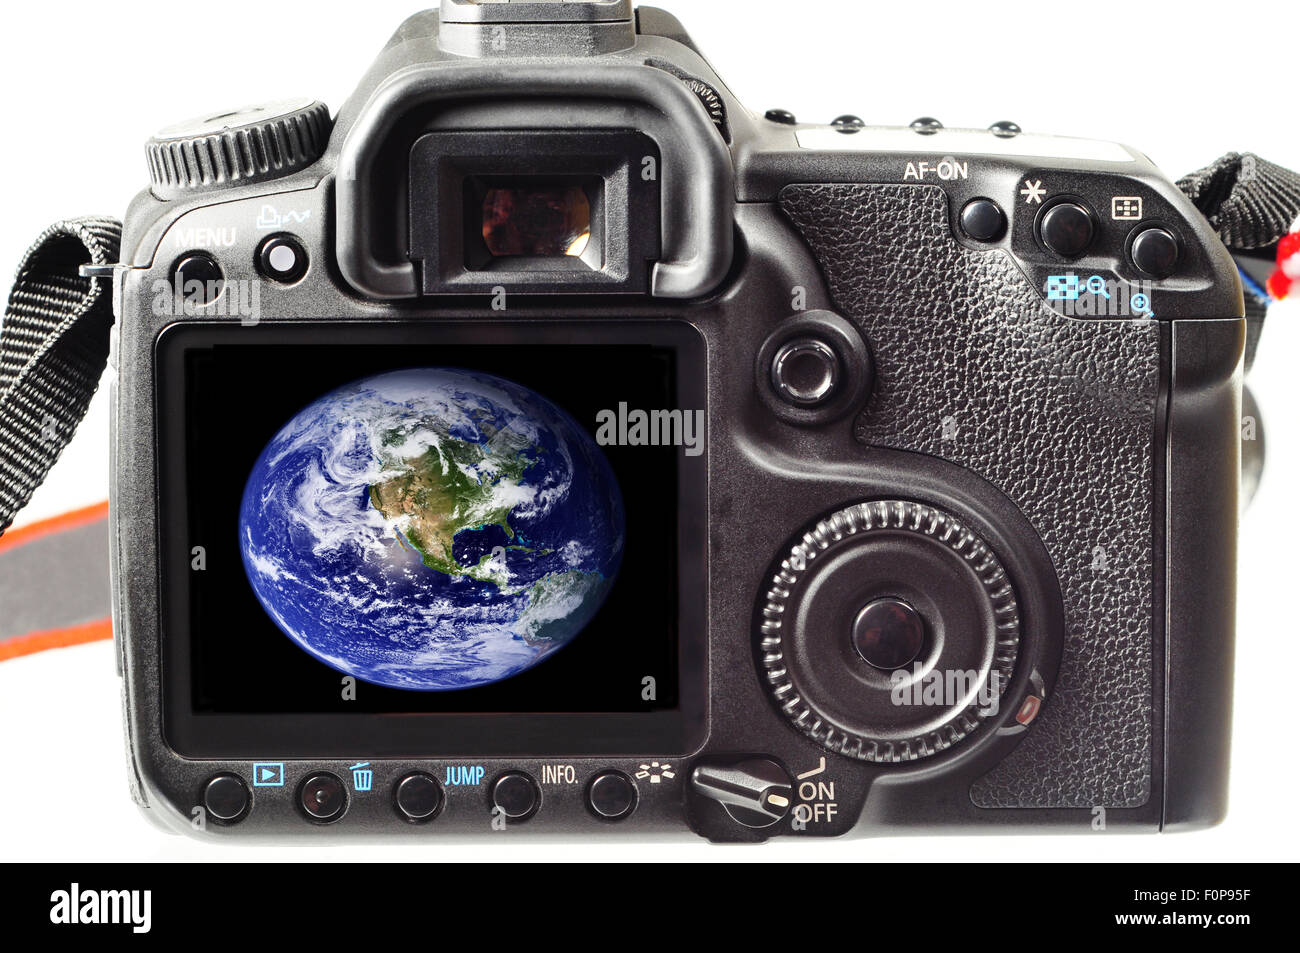 Back of a digital slr camera with the world photo in its display - Stock Image